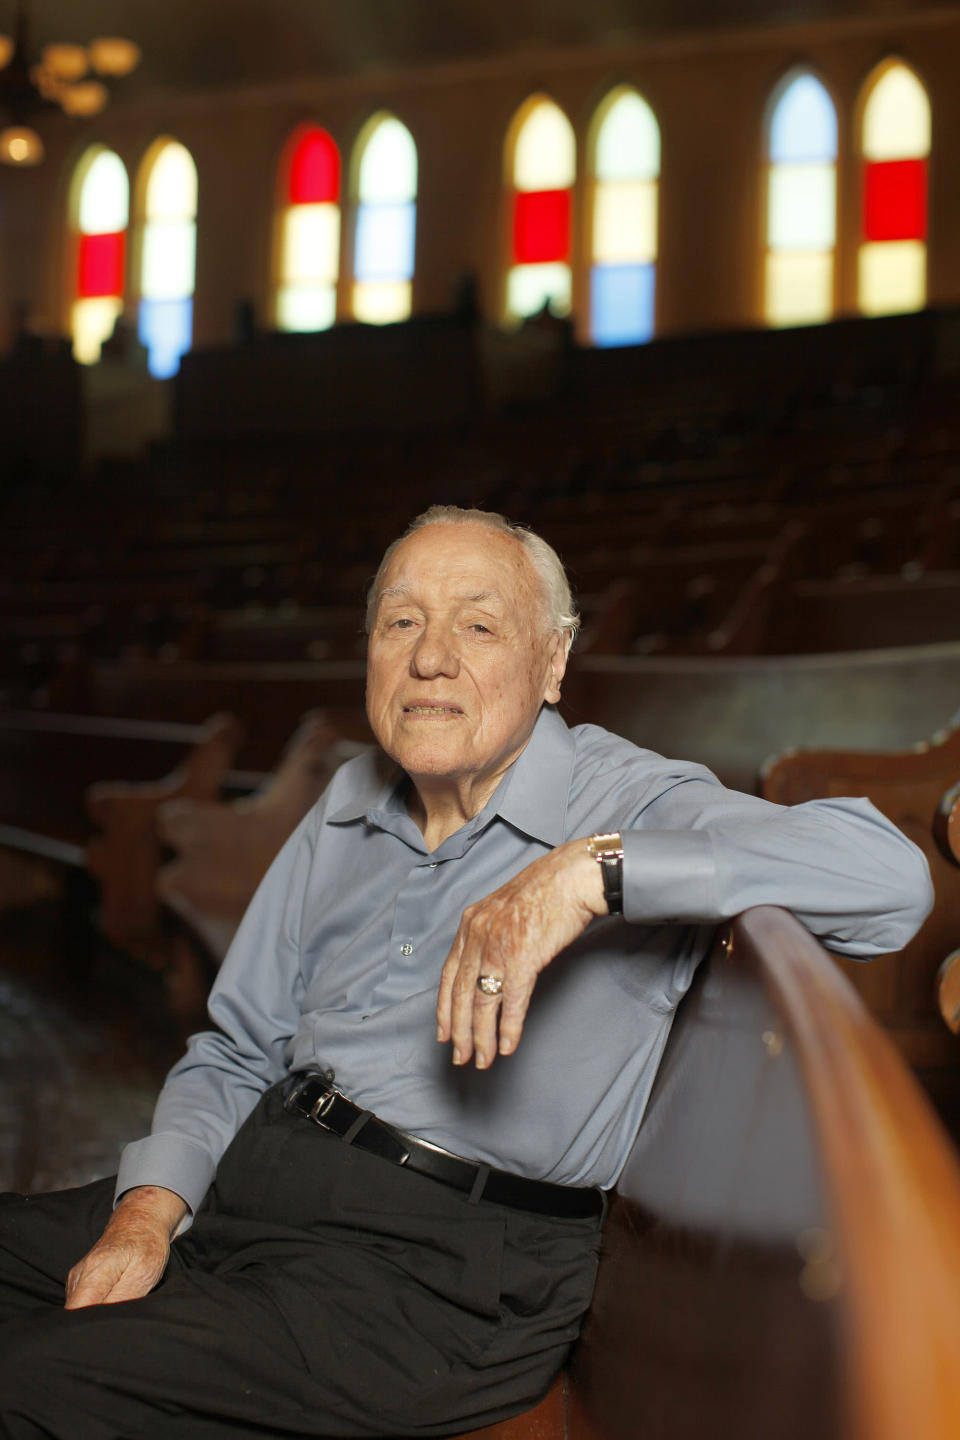 FILE - In this July 8, 2010 photo, Earl Scruggs poses for a portrait at the Ryman Auditorium in Nashville, Tenn. Scruggs' son Gary said his father passed away Wednesday morning, March 28, 2012 at a Nashville, Tenn., hospital of natural causes. He was 88. (AP Photo/Josh Anderson, File)